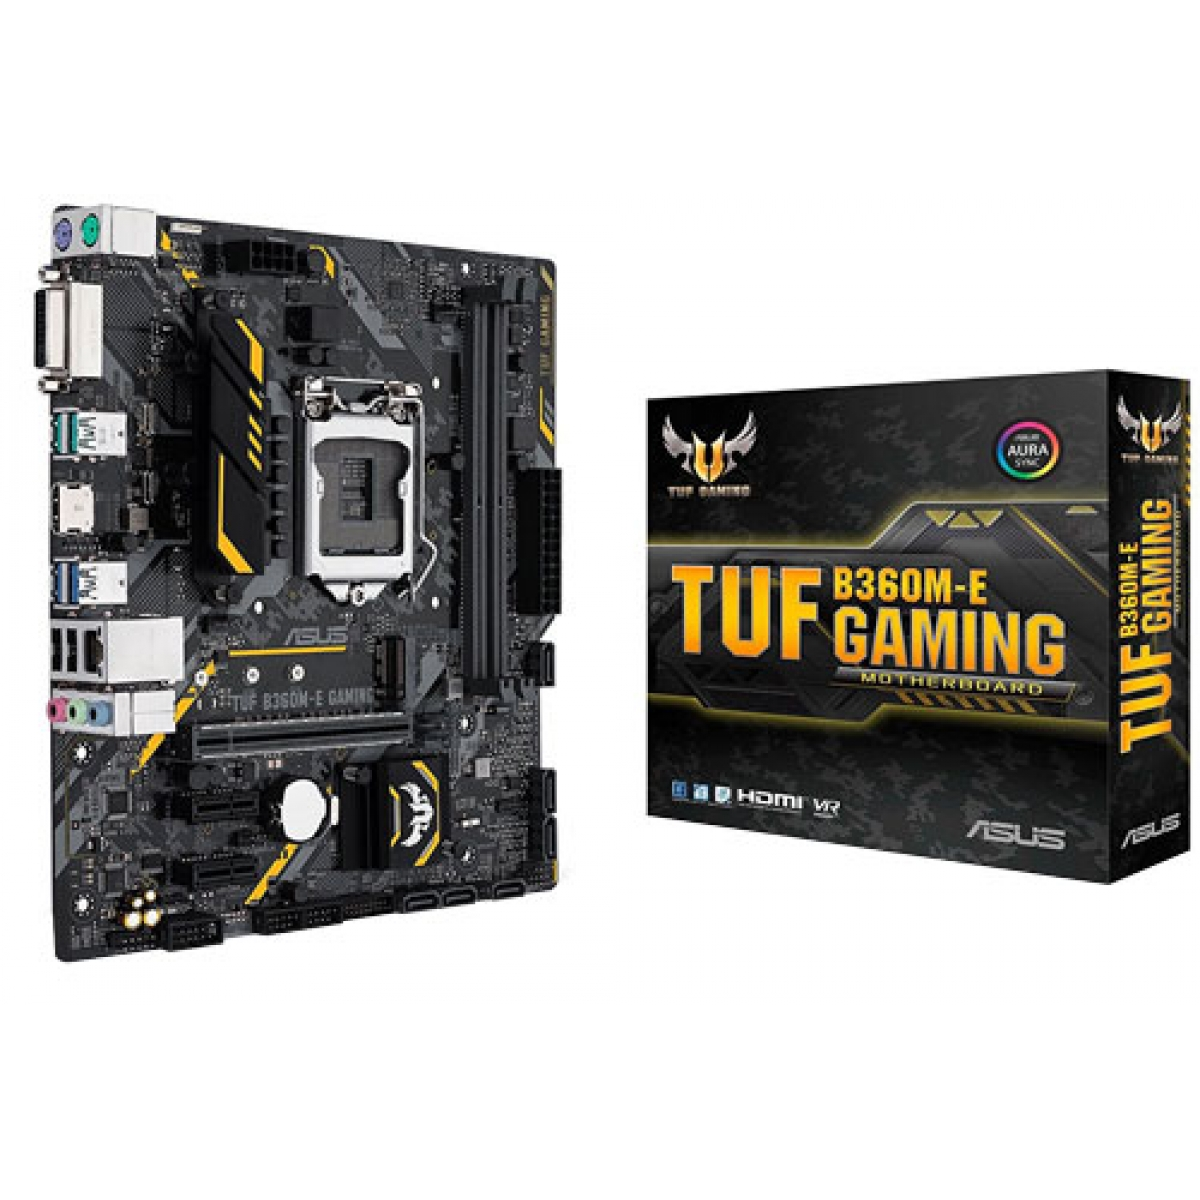 Placa Mãe Asus TUF B360M-E Gaming, Chipset B360, Intel LGA 1151, mATX, DDR4